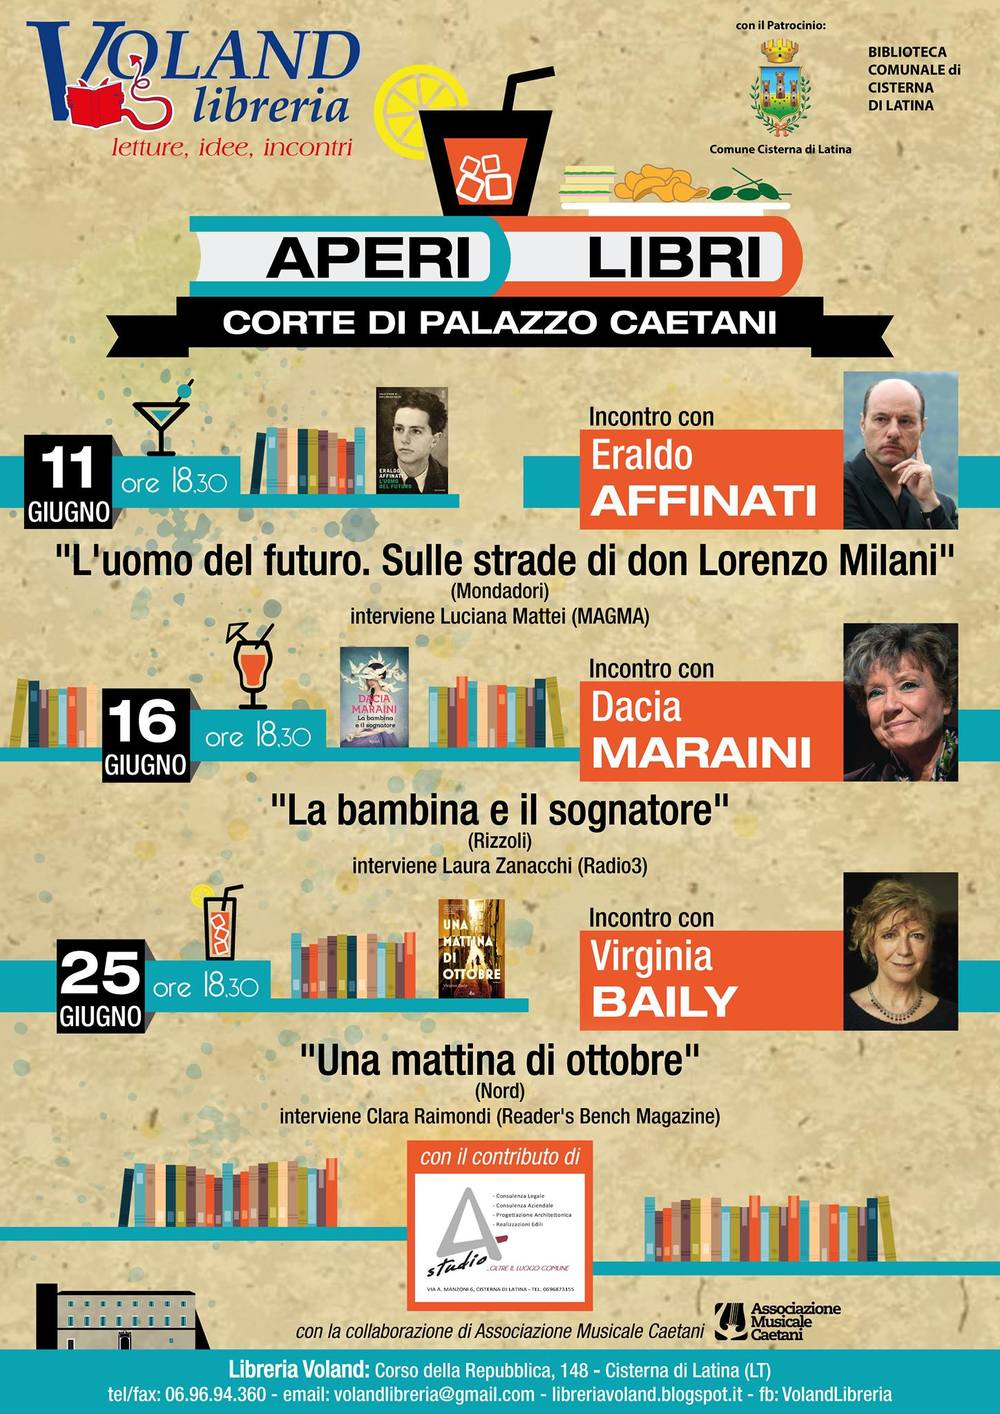 Voland libreria bookshop poster about June literary events.